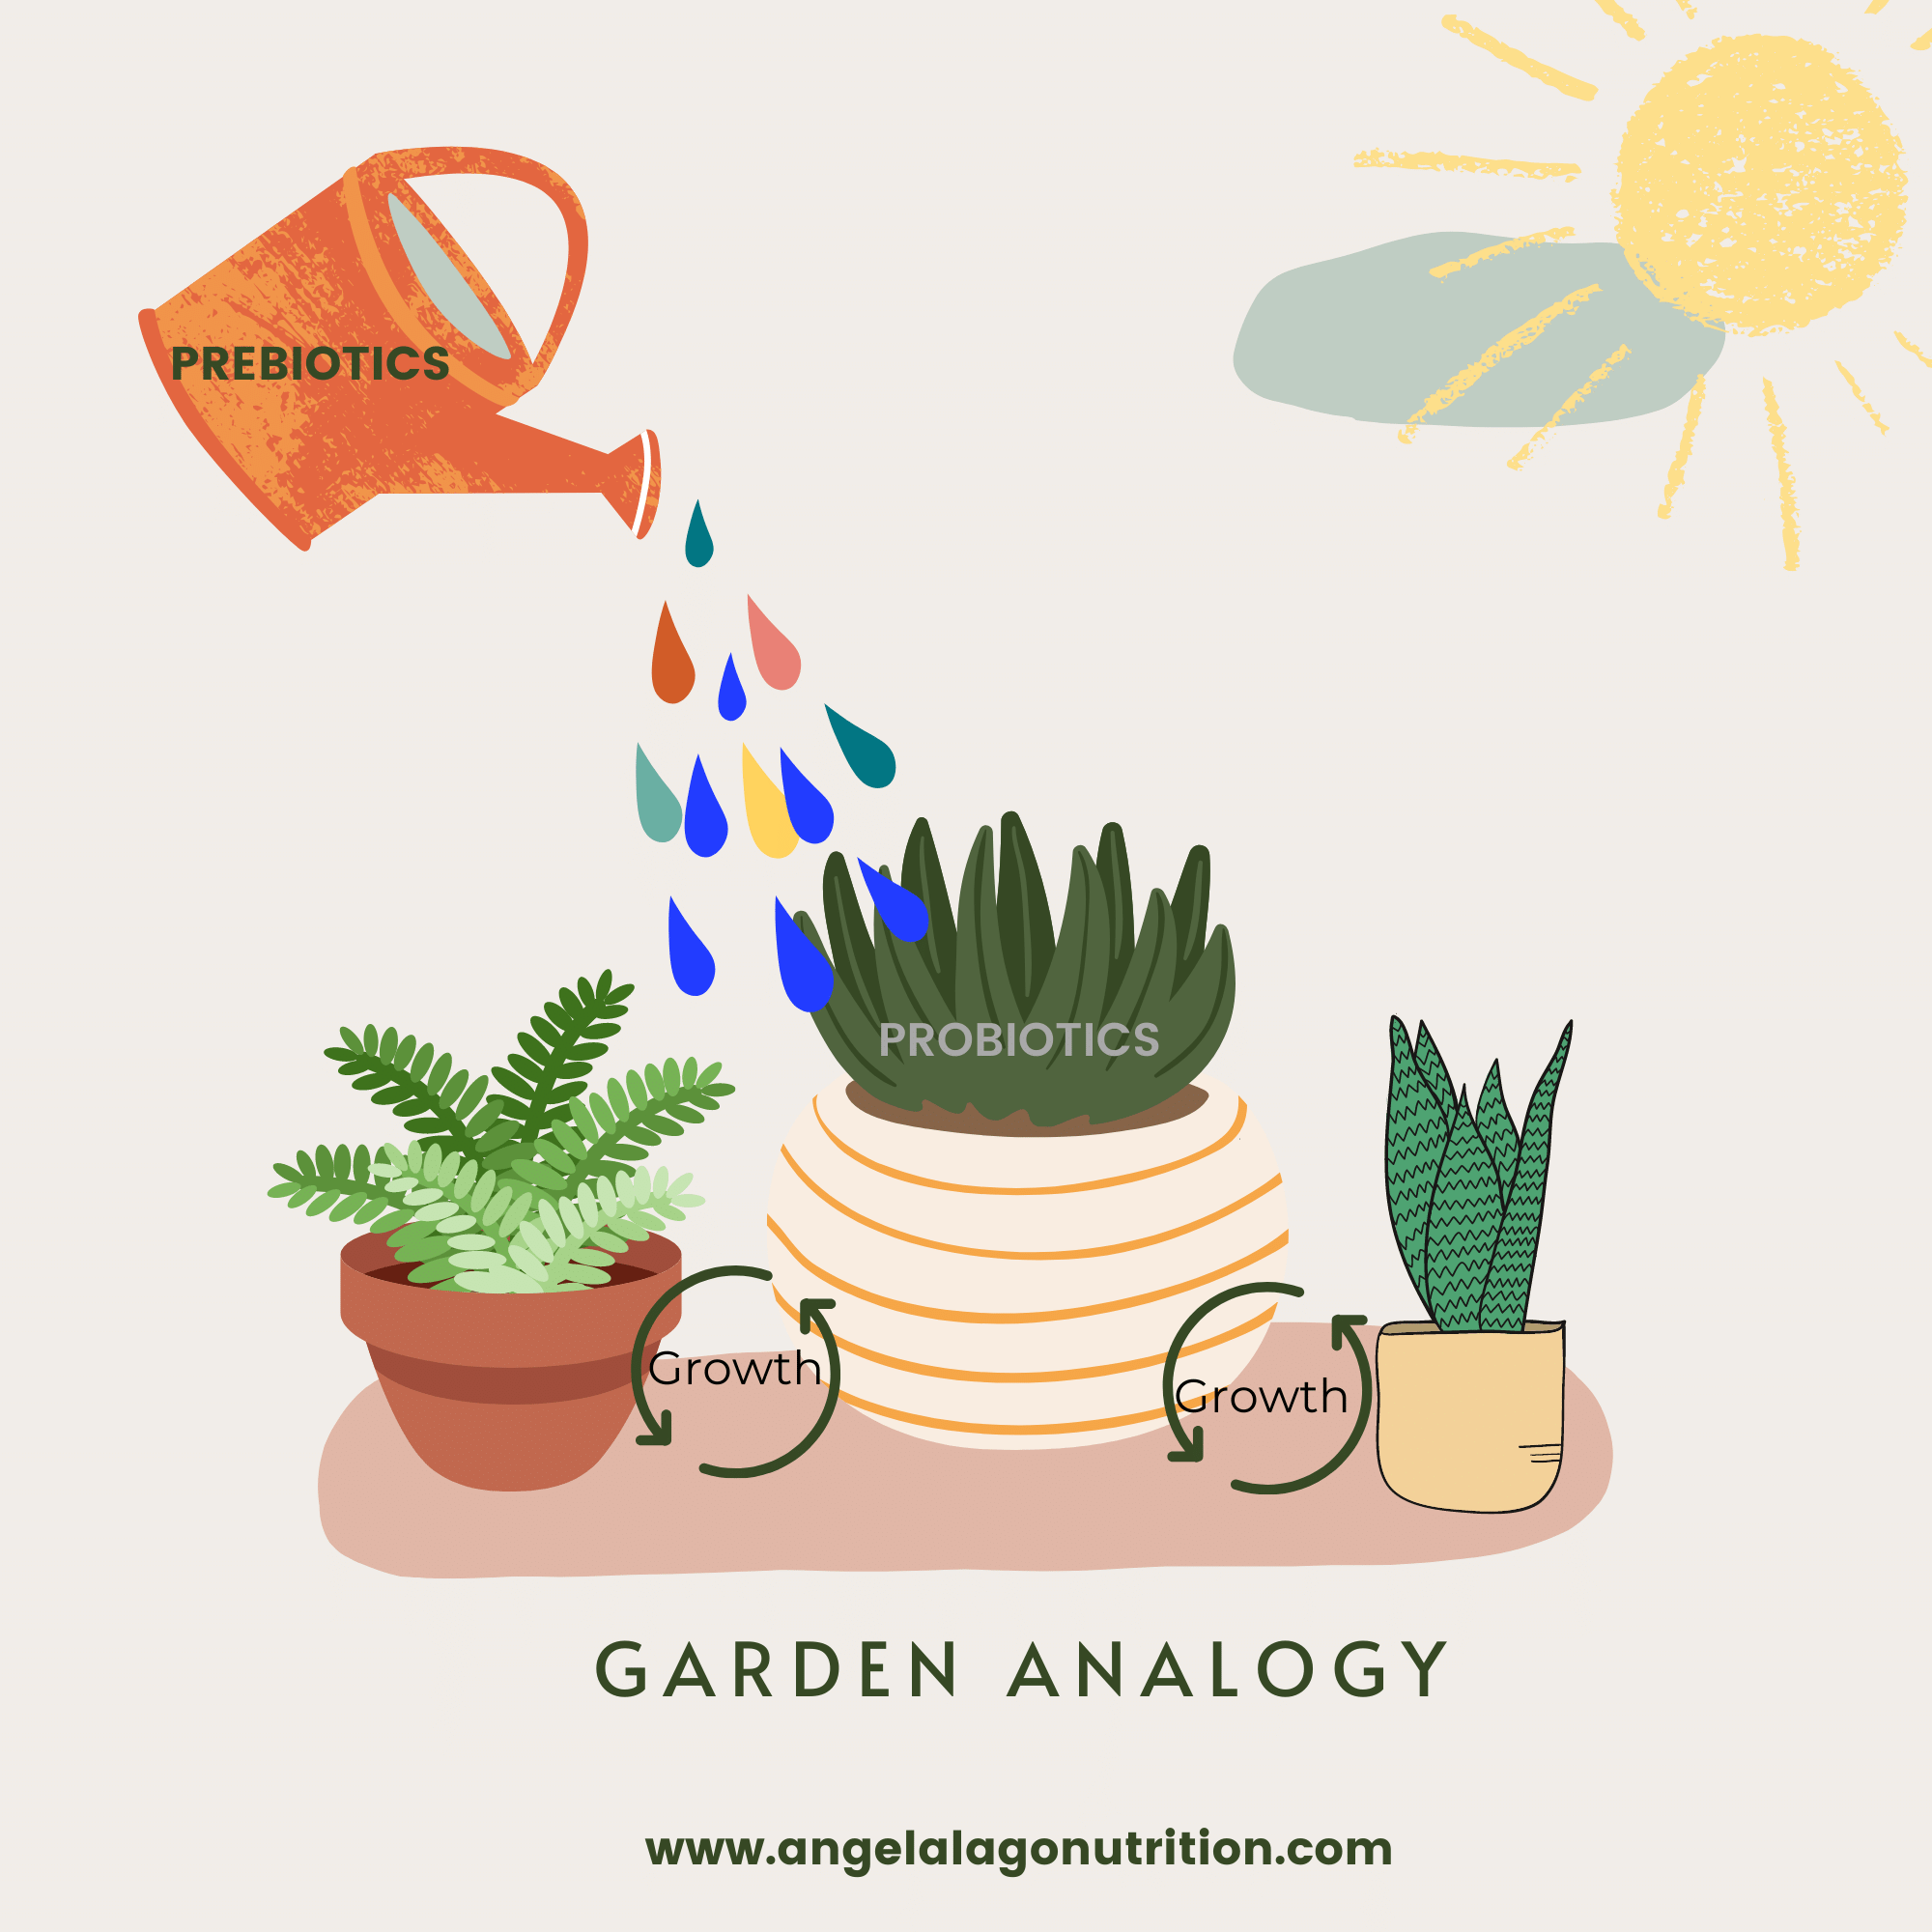 Garden Analogy of how prebiotics feed the good bacteria (probiotics) in our gut.